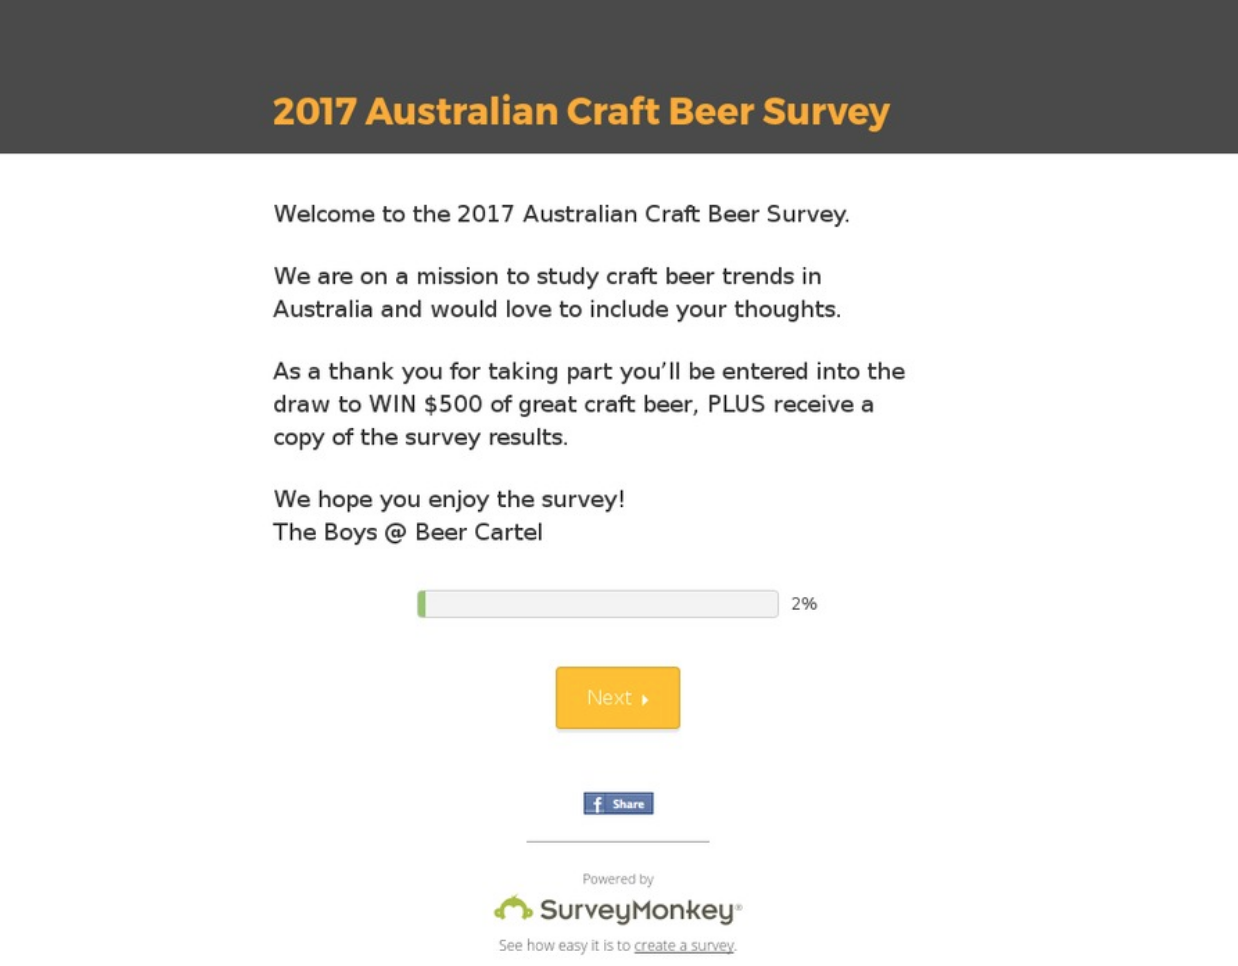 Screenshot showing a survey